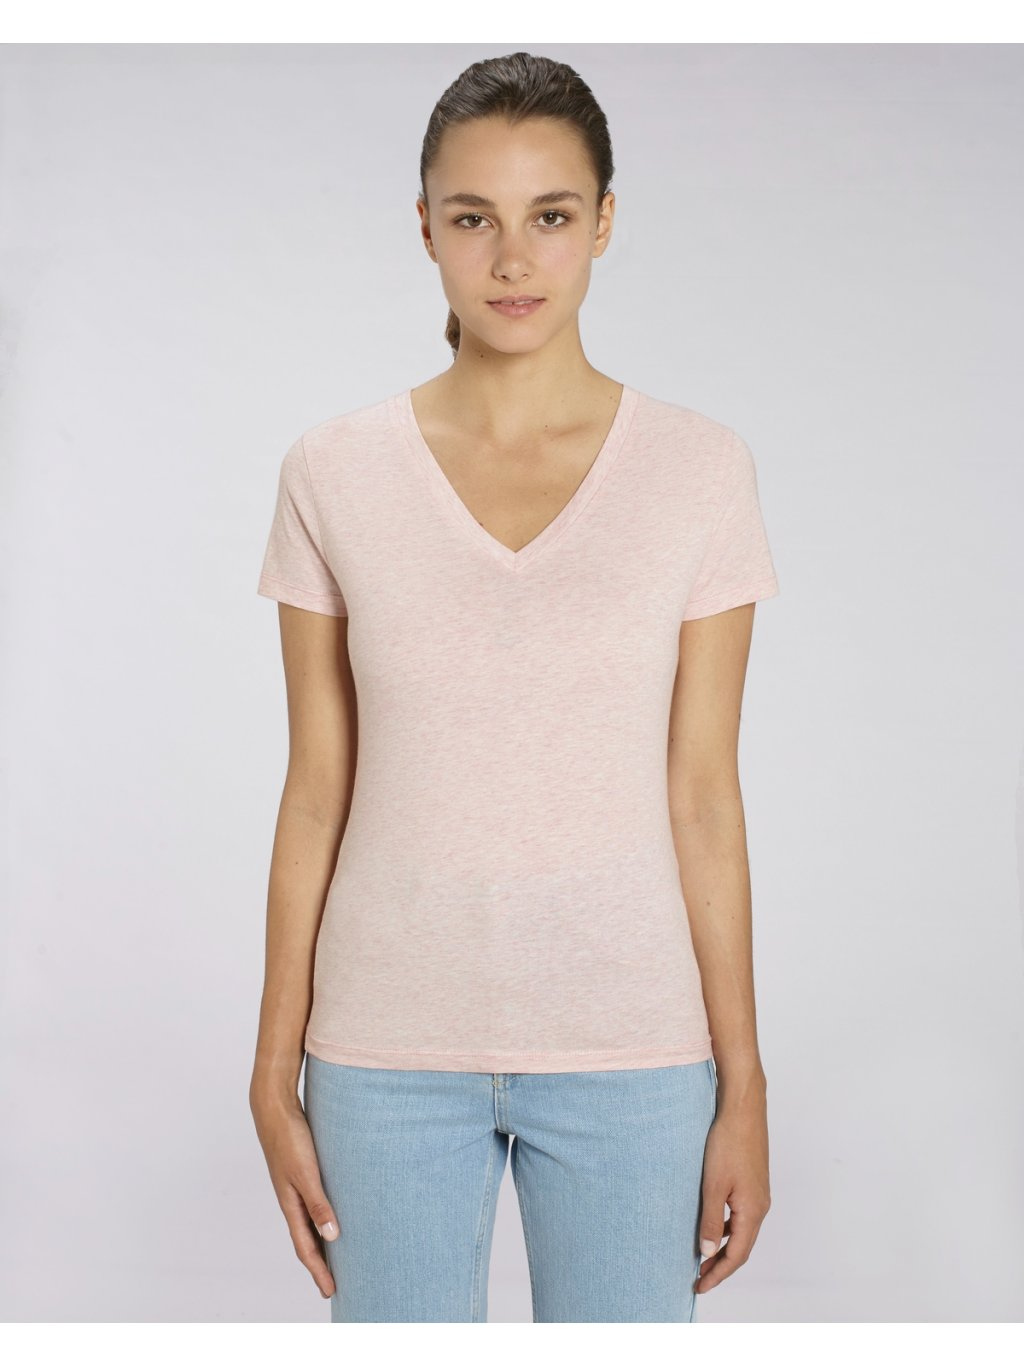 Stella Evoker Cream Heather Pink Studio Front Main 6